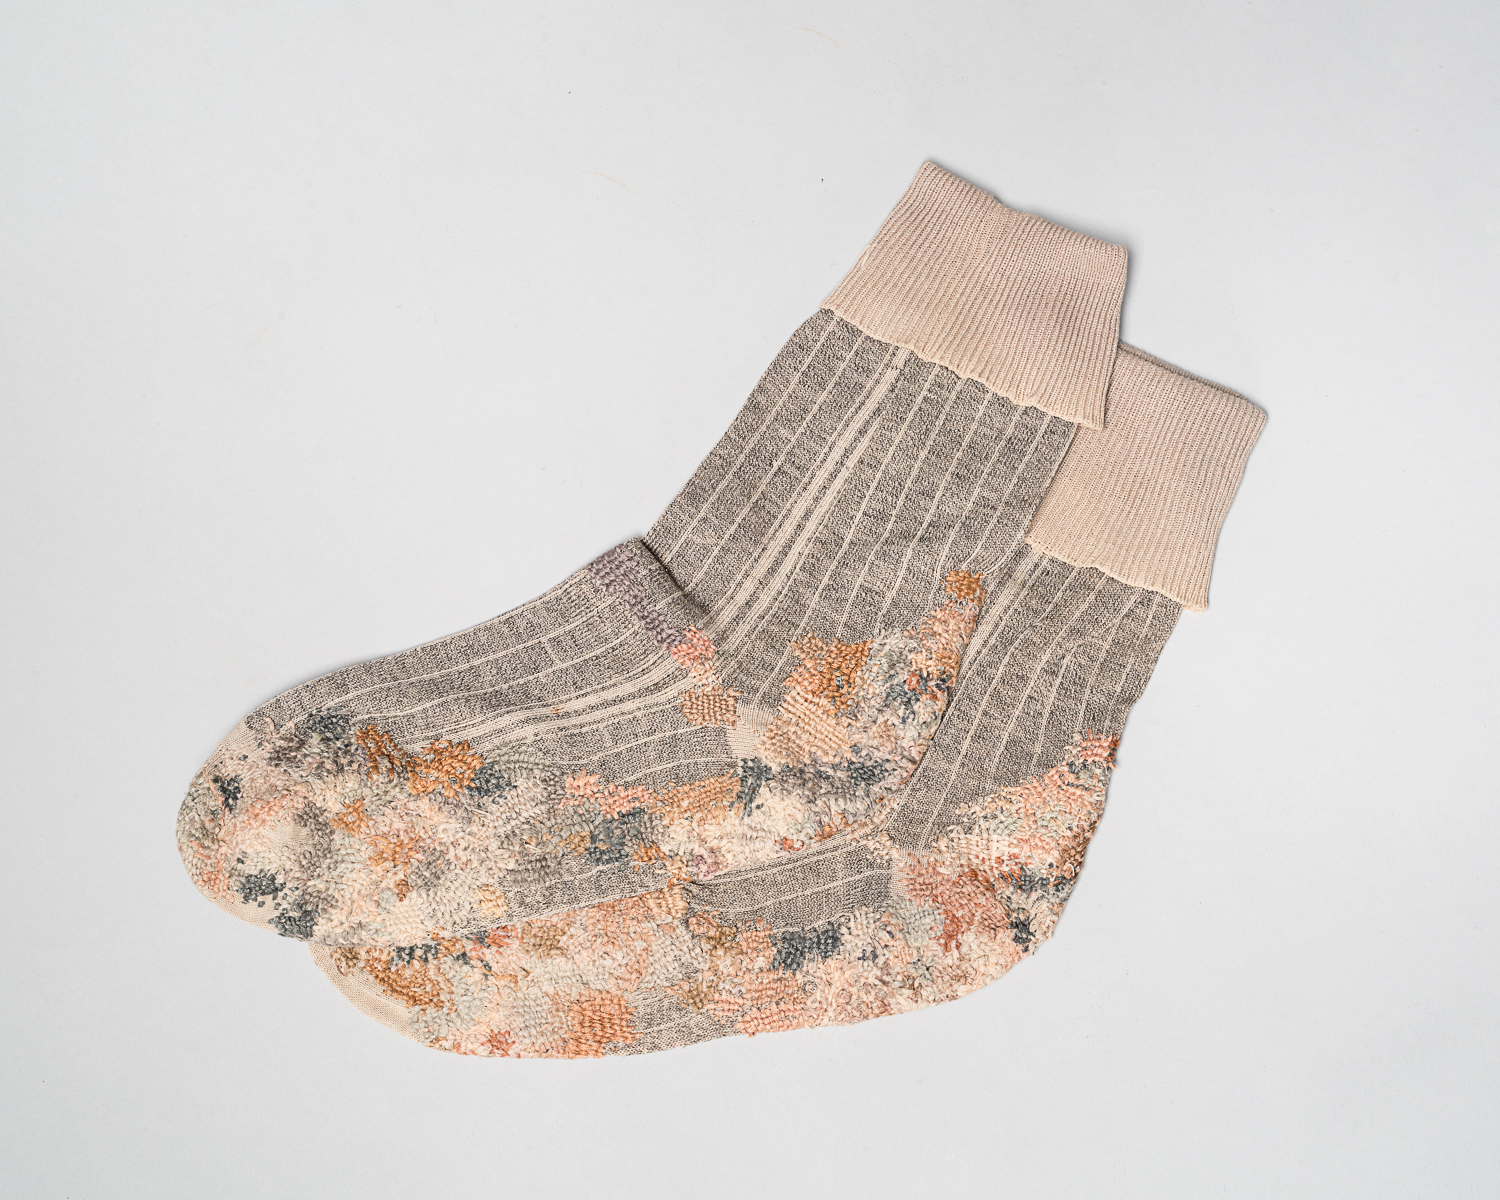 These gray socks belonged to Djuro Svarc who lived in Croatia.